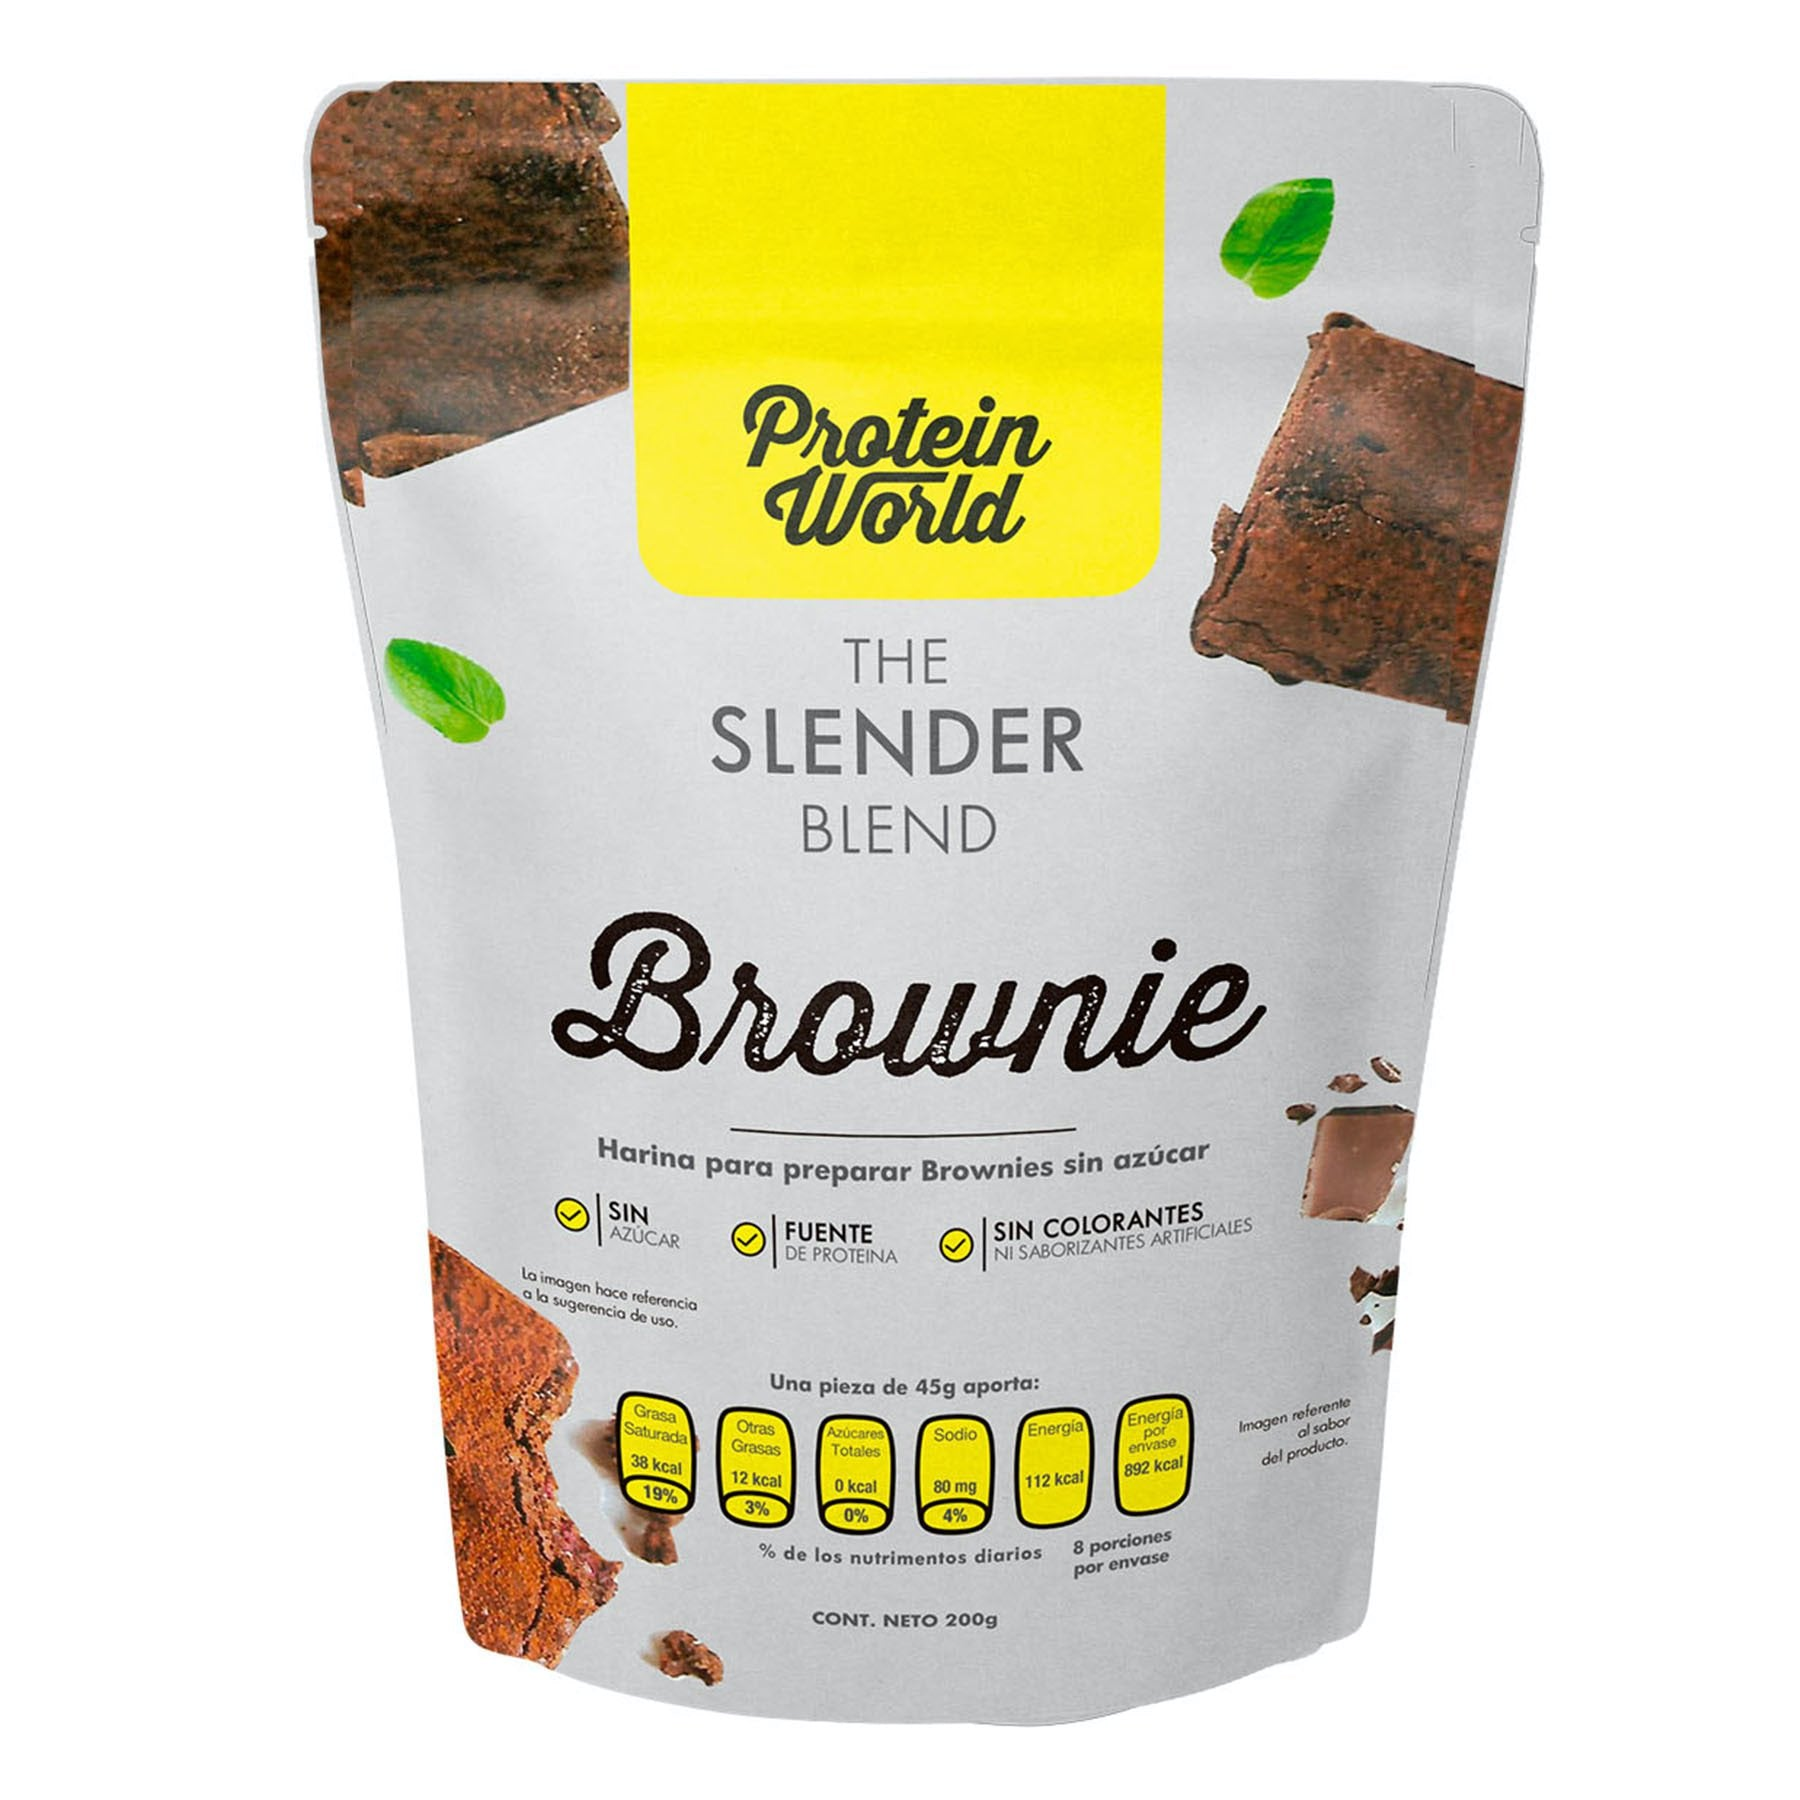 The Slender Brownies